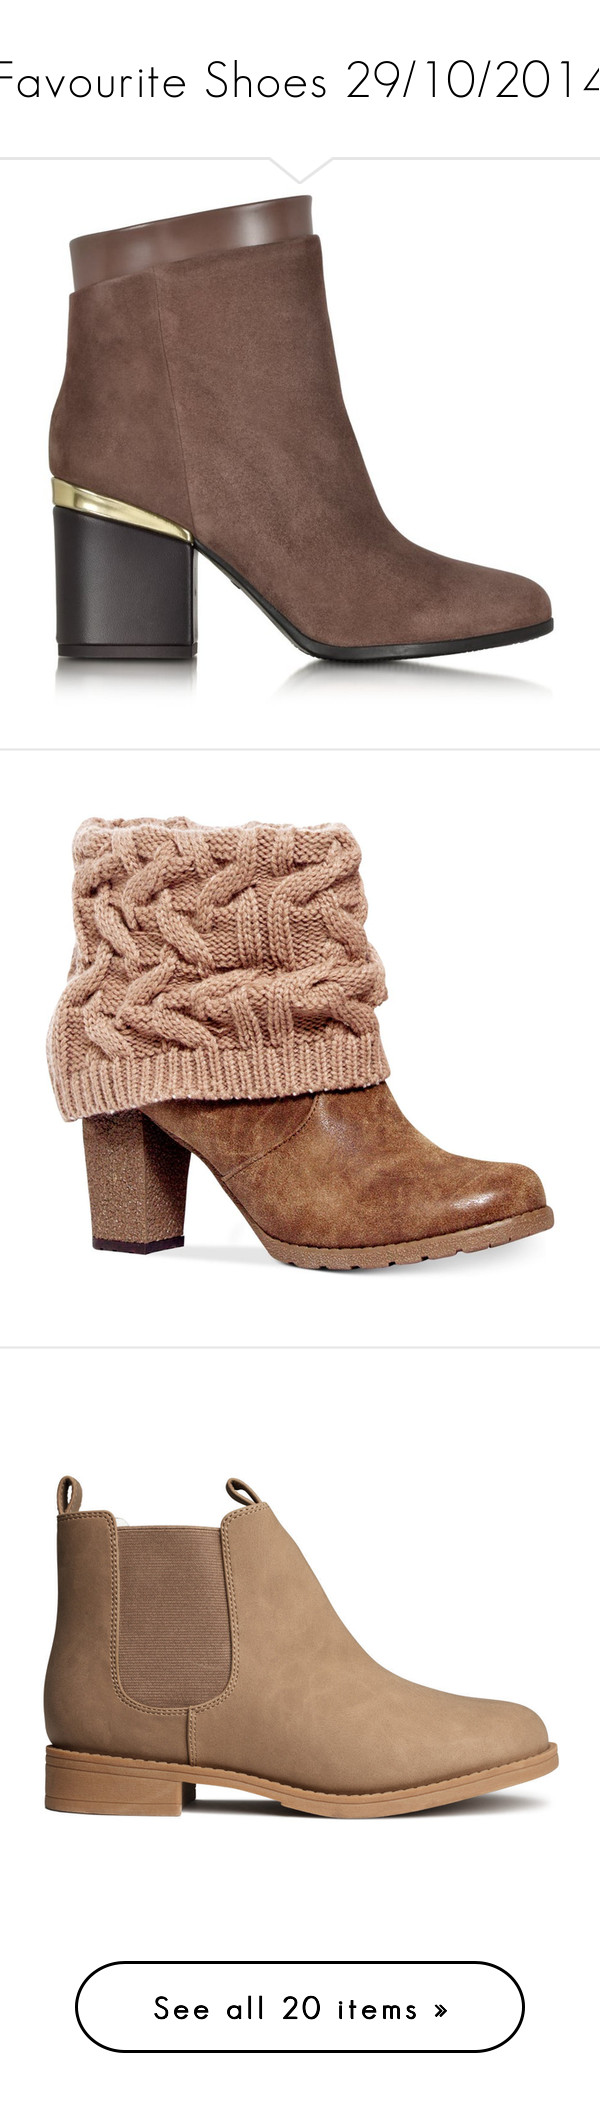 """Favourite Shoes 29/10/2014"" by naomimjc ❤ liked on Polyvore featuring shoes, boots, ankle booties, side zip boots, suede ankle boots, short suede boots, ankle boots, suede bootie, heels and booties"